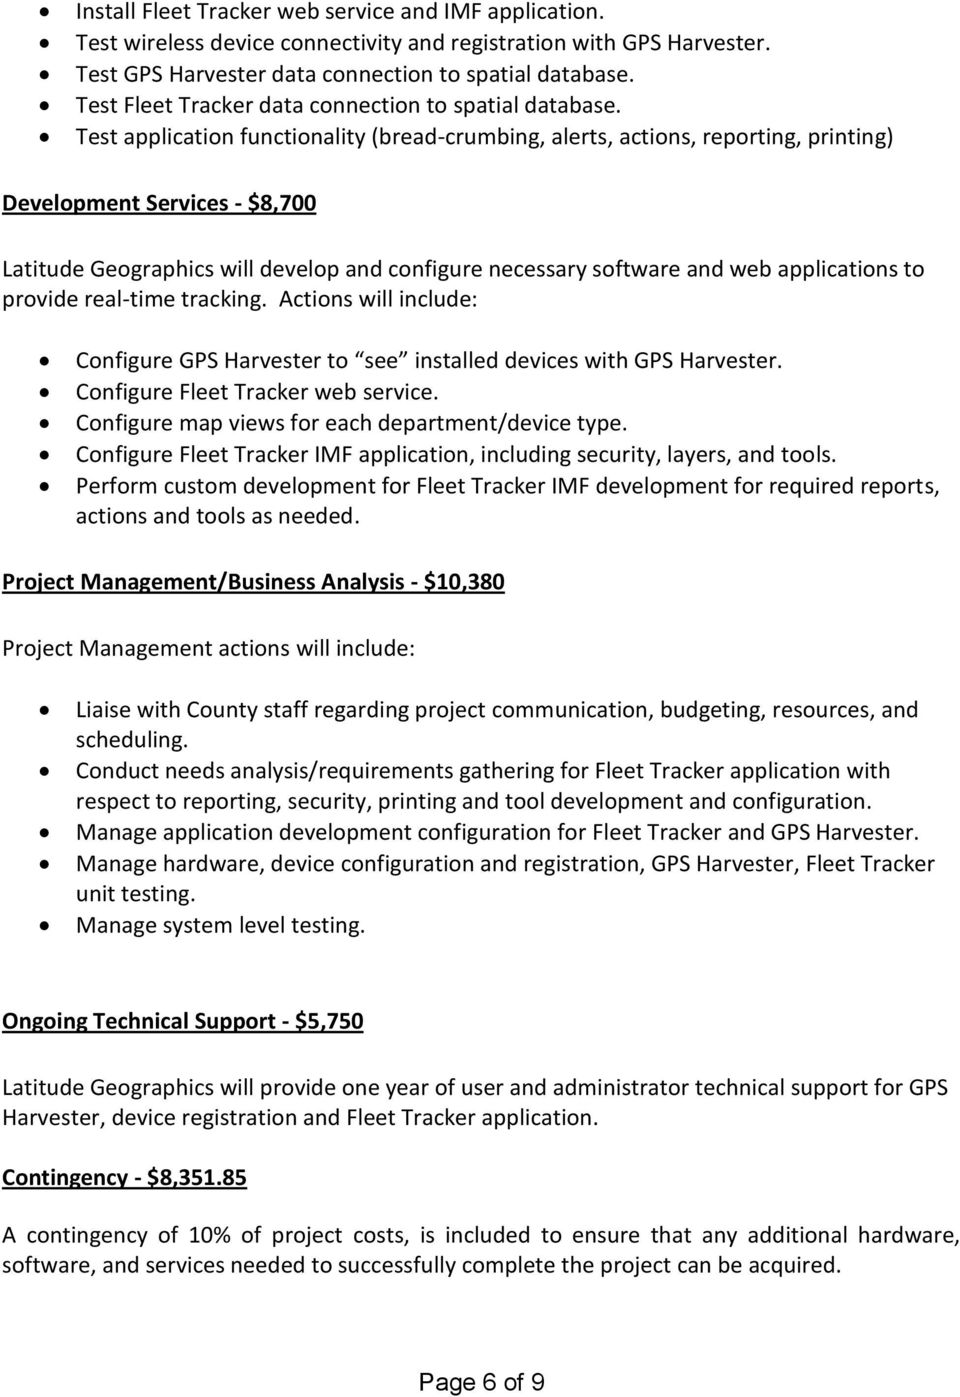 Test application functionality (bread-crumbing, alerts, actions, reporting, printing) Development Services - $8,700 Latitude Geographics will develop and configure necessary software and web